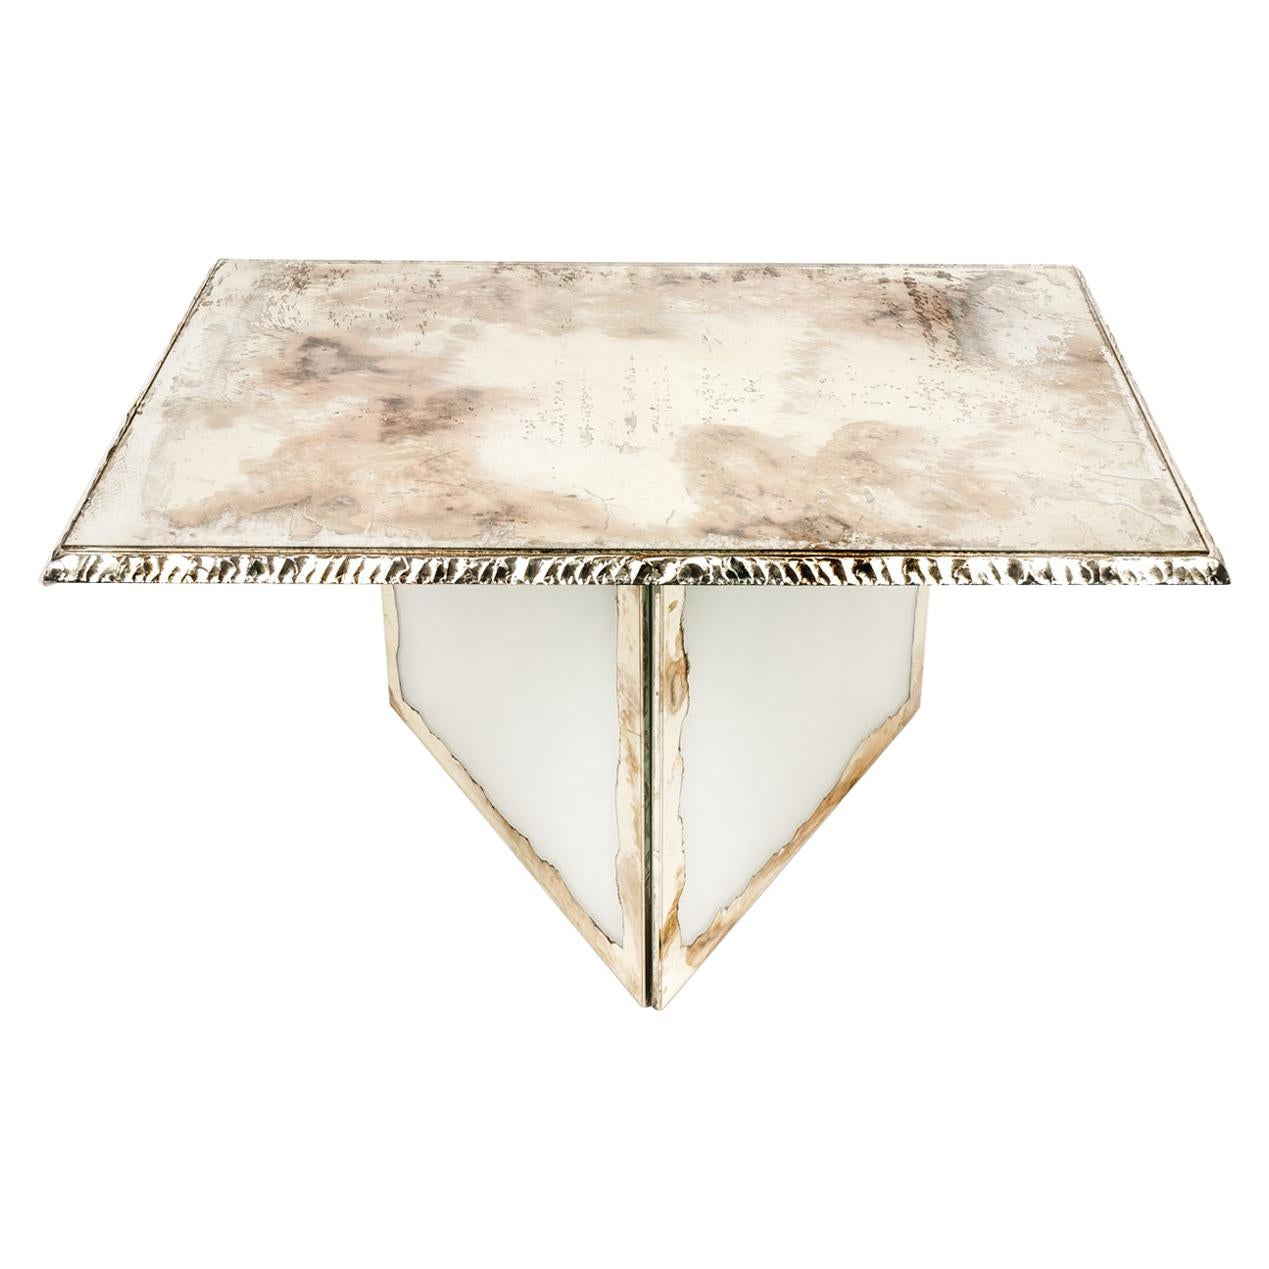 Flight Contemporary low-Coffee Table, 70x50 cm White silvered glass